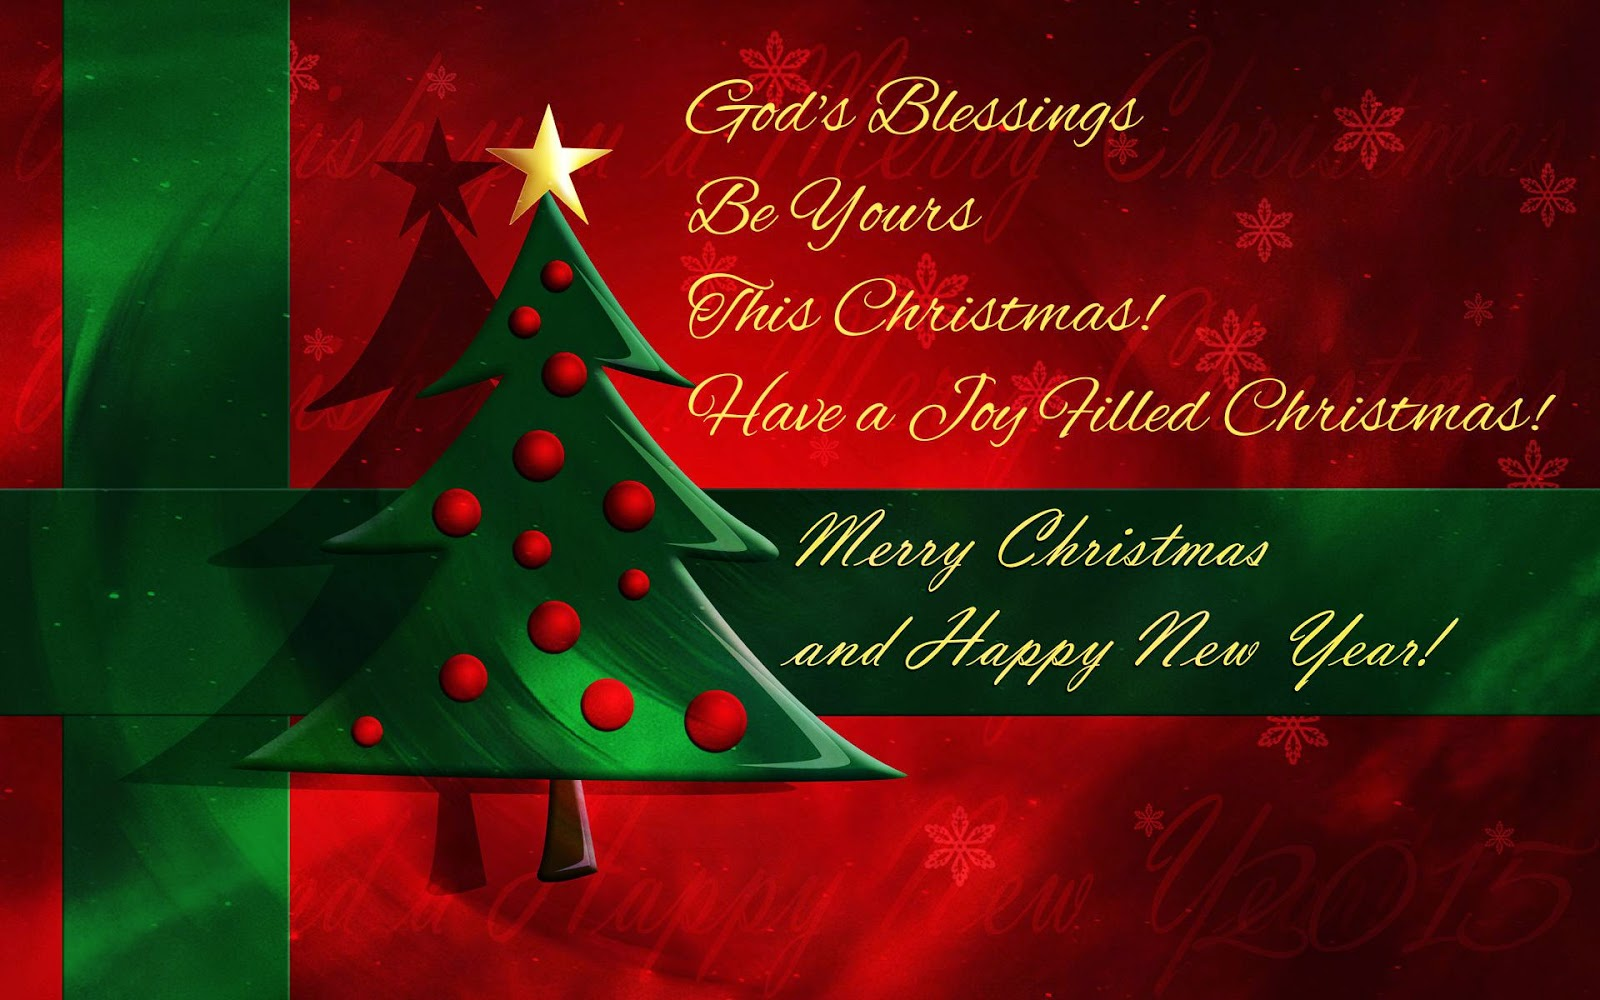 Religious Merry Christmas Images.Merry Christmas And Happy New Year Religious Wt3khph5c